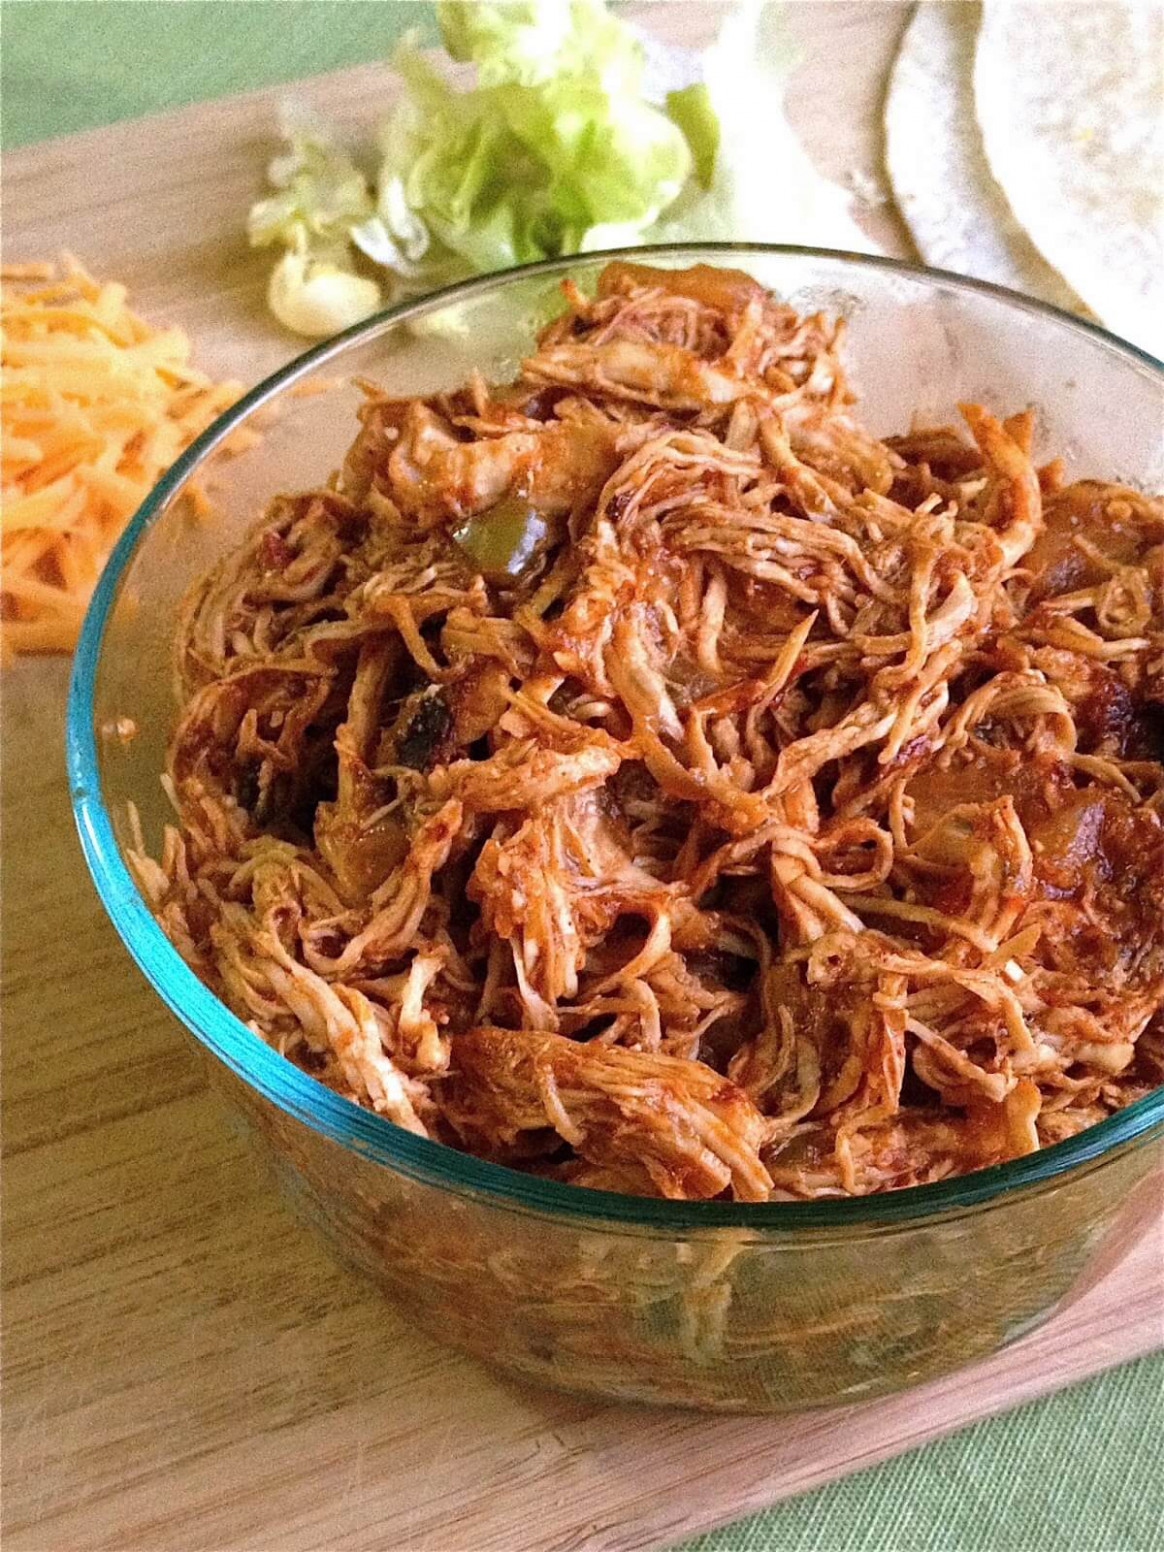 Shredded Chicken Recipes For Meals To Dinners – Food ..